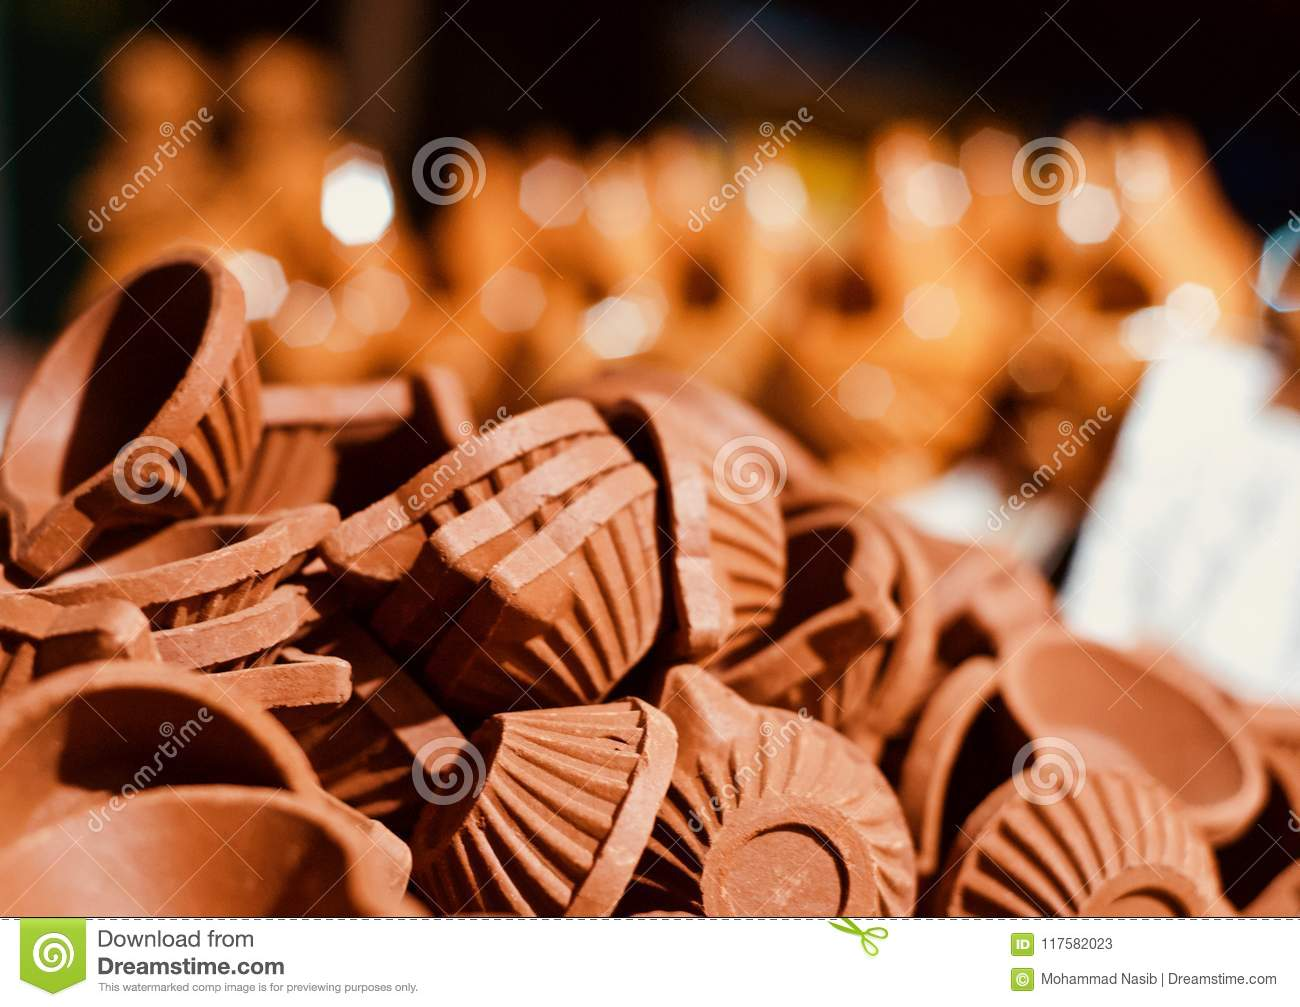 Download Beautiful Clay Made Pottery Objects In A Stack Unique Photo Stock Image - Image of creative, business: 117582023